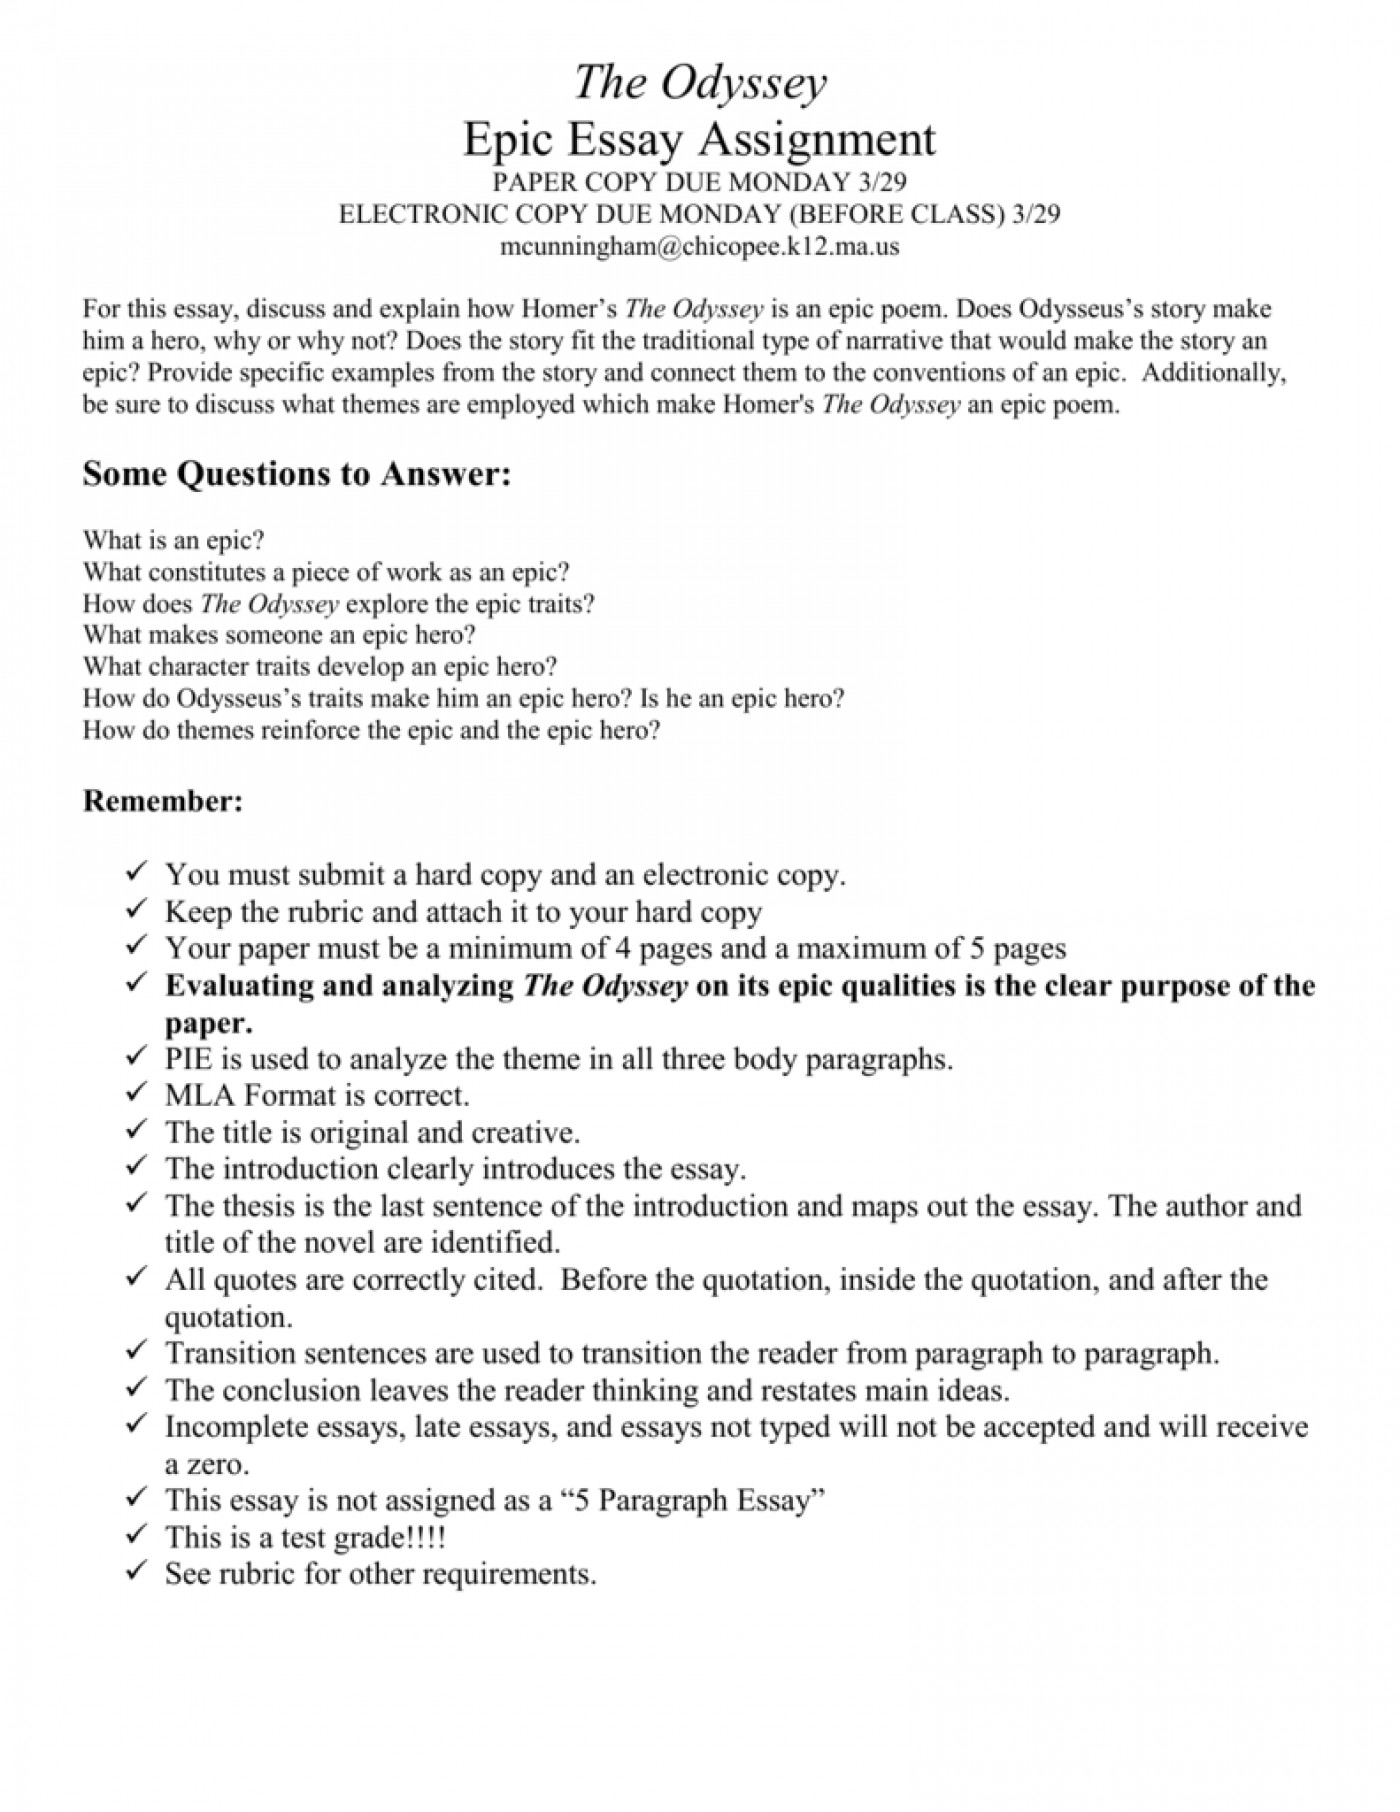 003 Odyssey Essay Topics 008040788 1 Amazing Prompt Prompts 1400